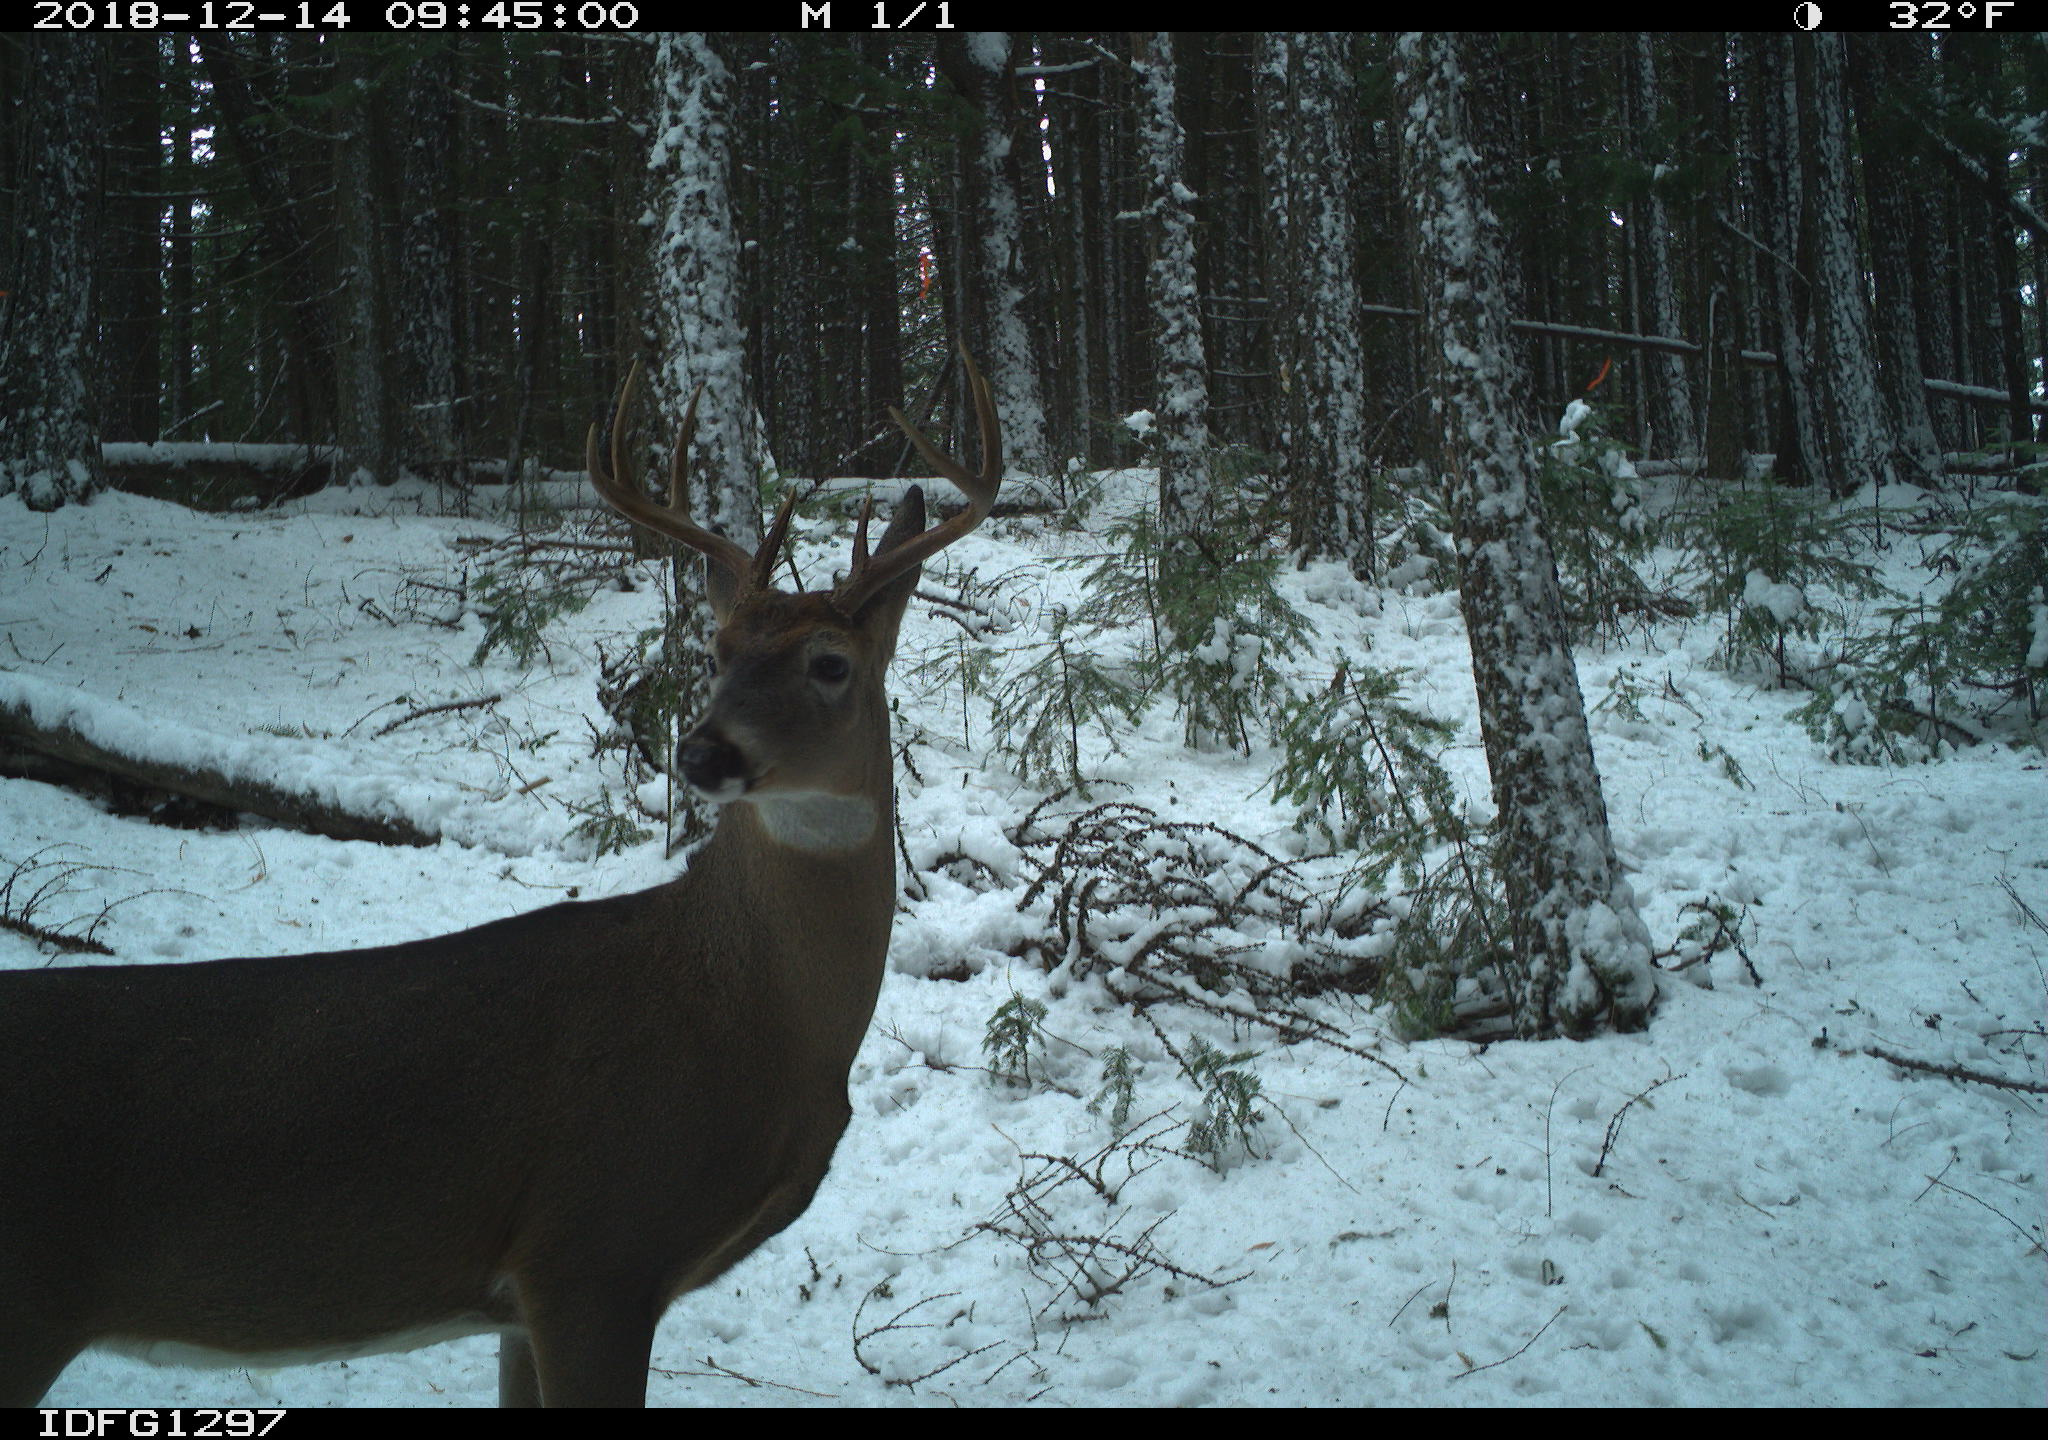 White-tailed deer camera research2.jpg